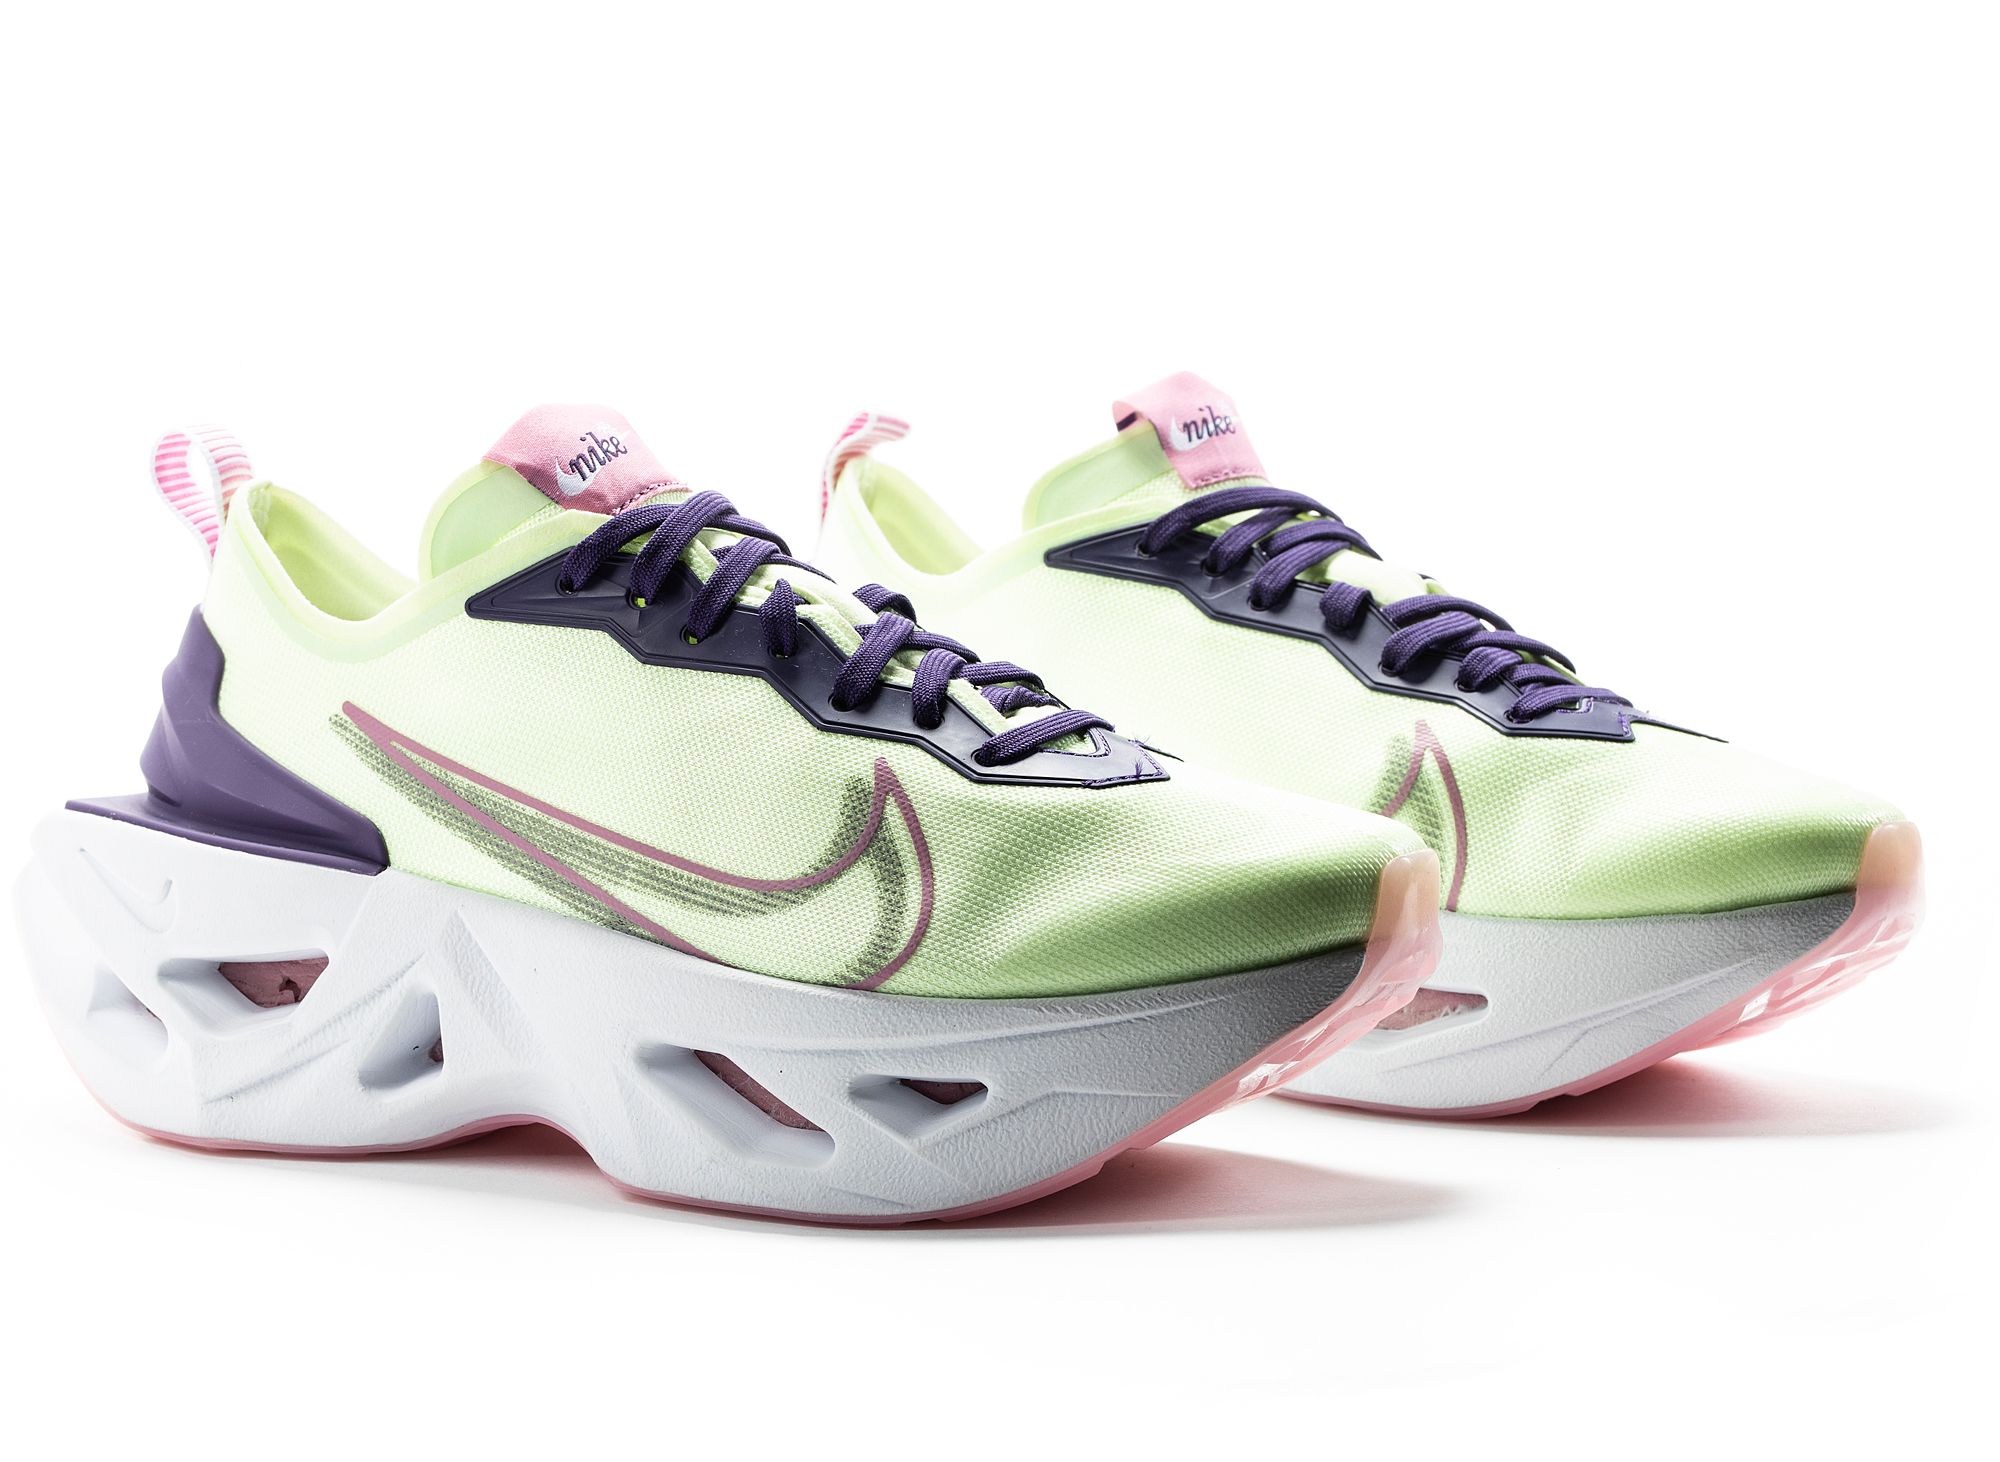 Women's Nike Zoom X Vista Grind Oneness Boutique